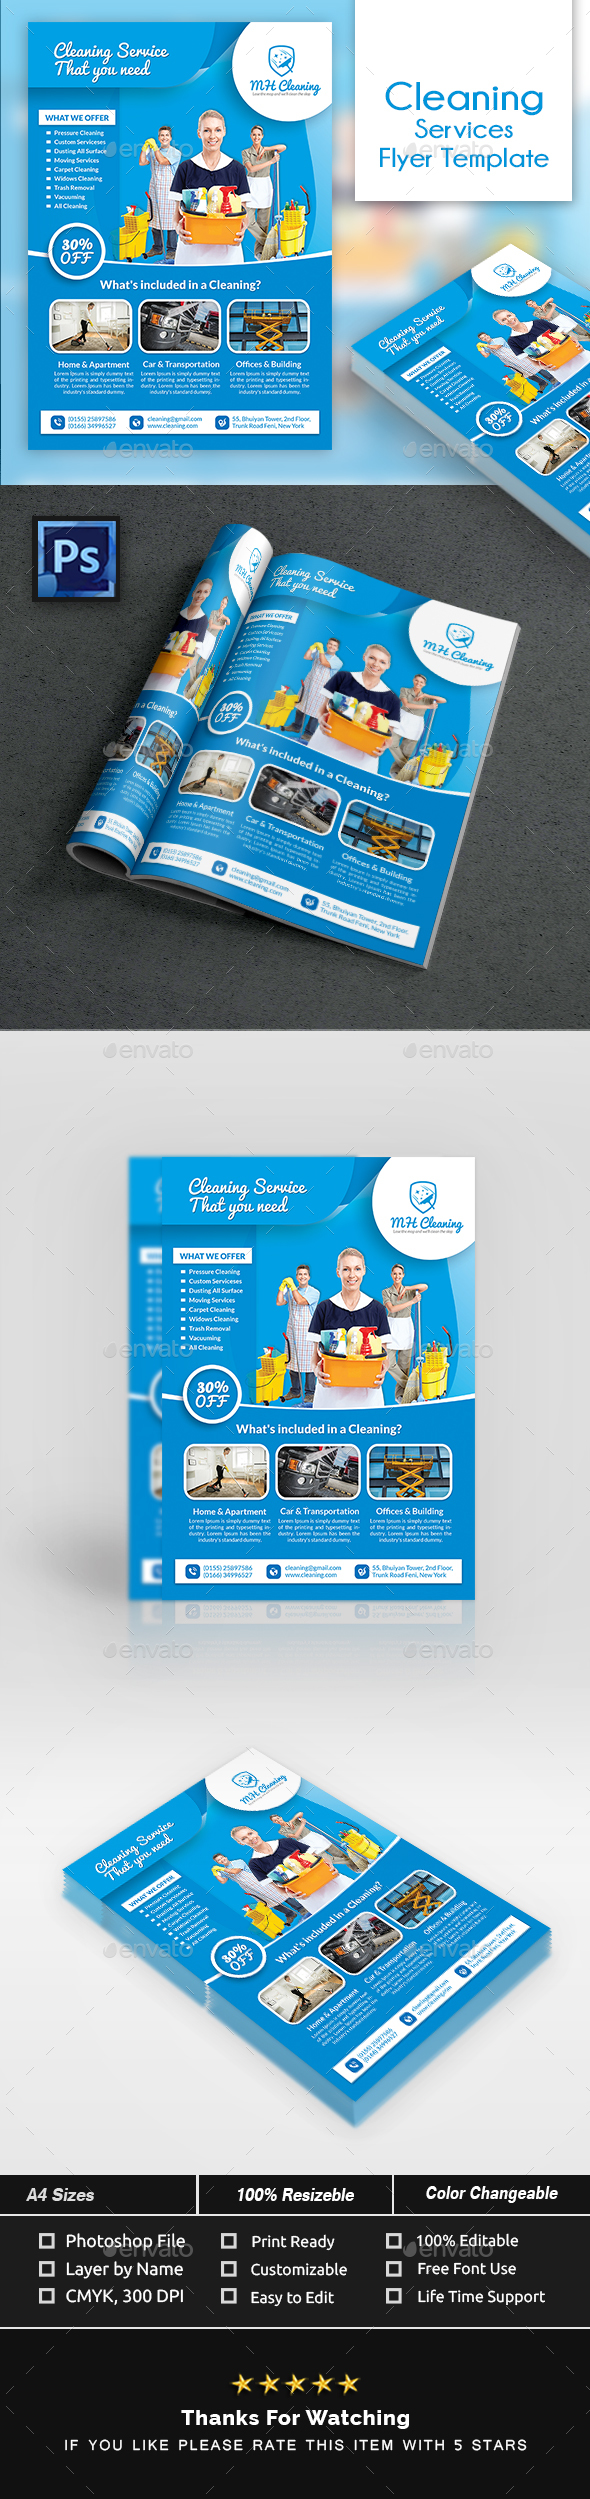 Cleaning Services Flyer Template - Commerce Flyers